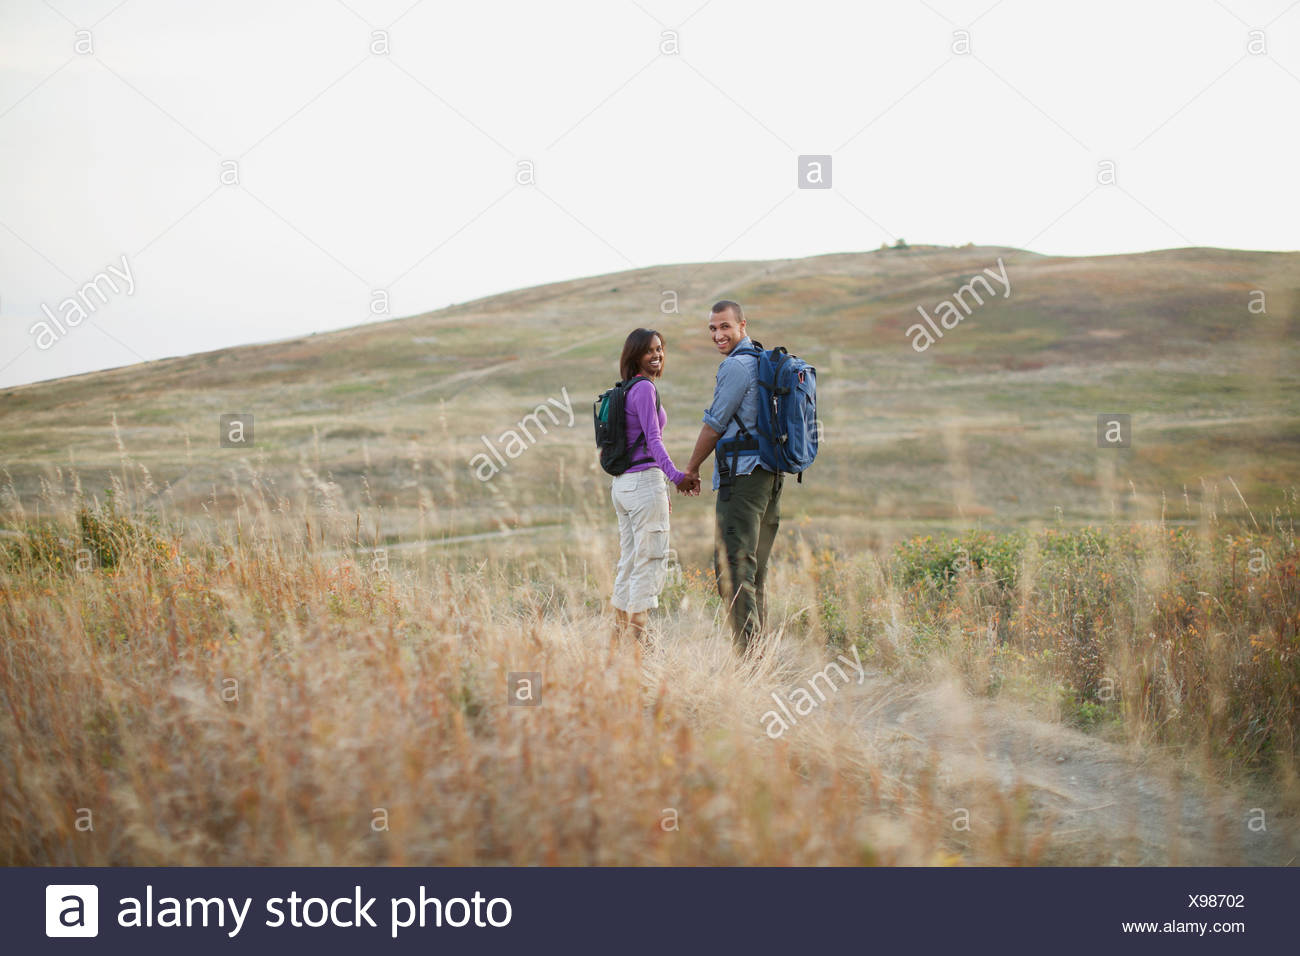 Couple holding hands as they walk through a field. Stock Photo